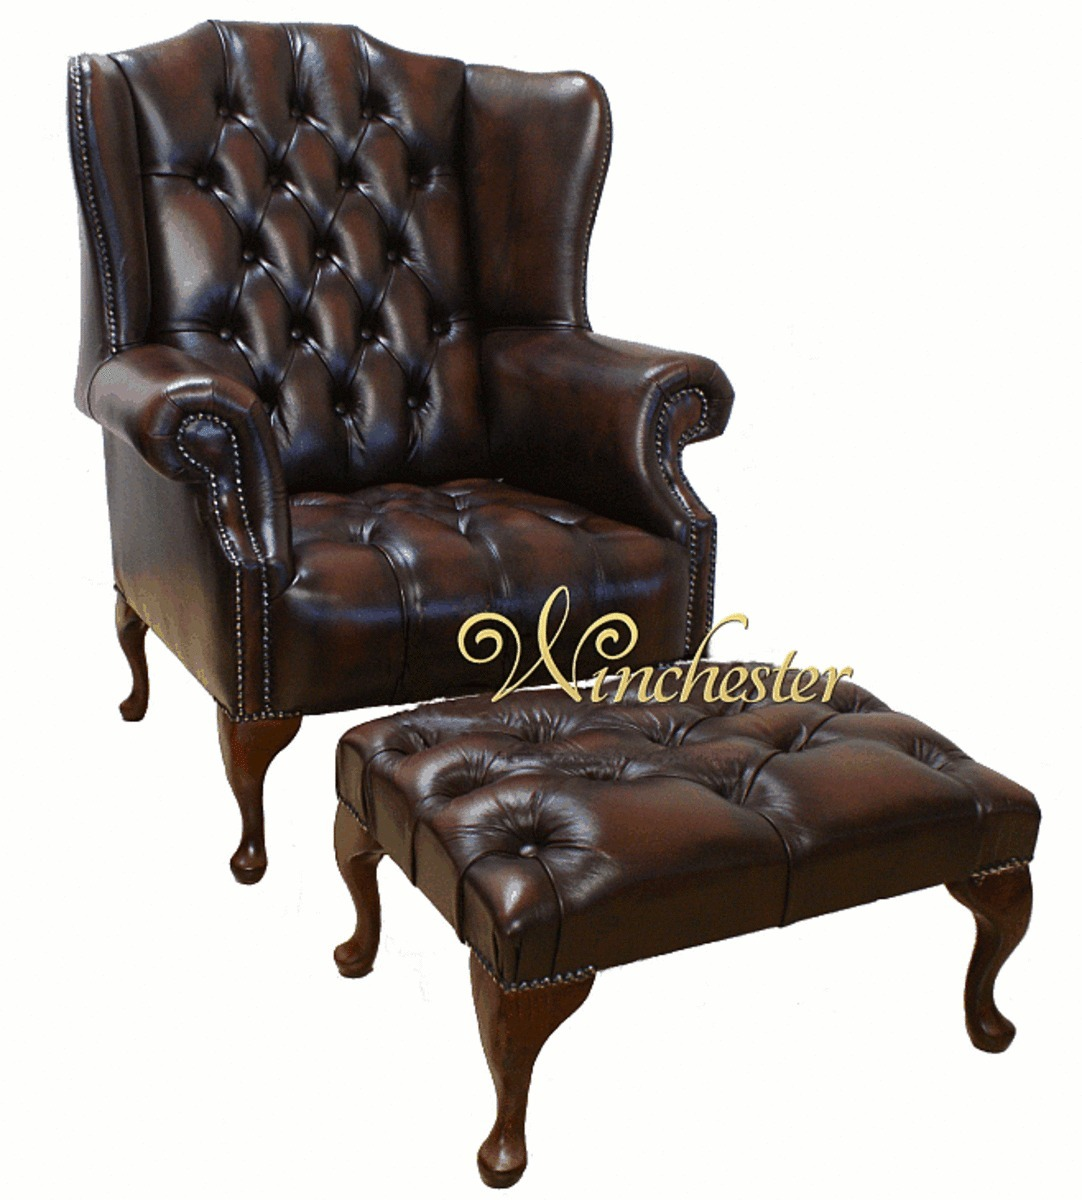 Chesterfield Mallory Buttoned Seat Flat Wing Queen Anne